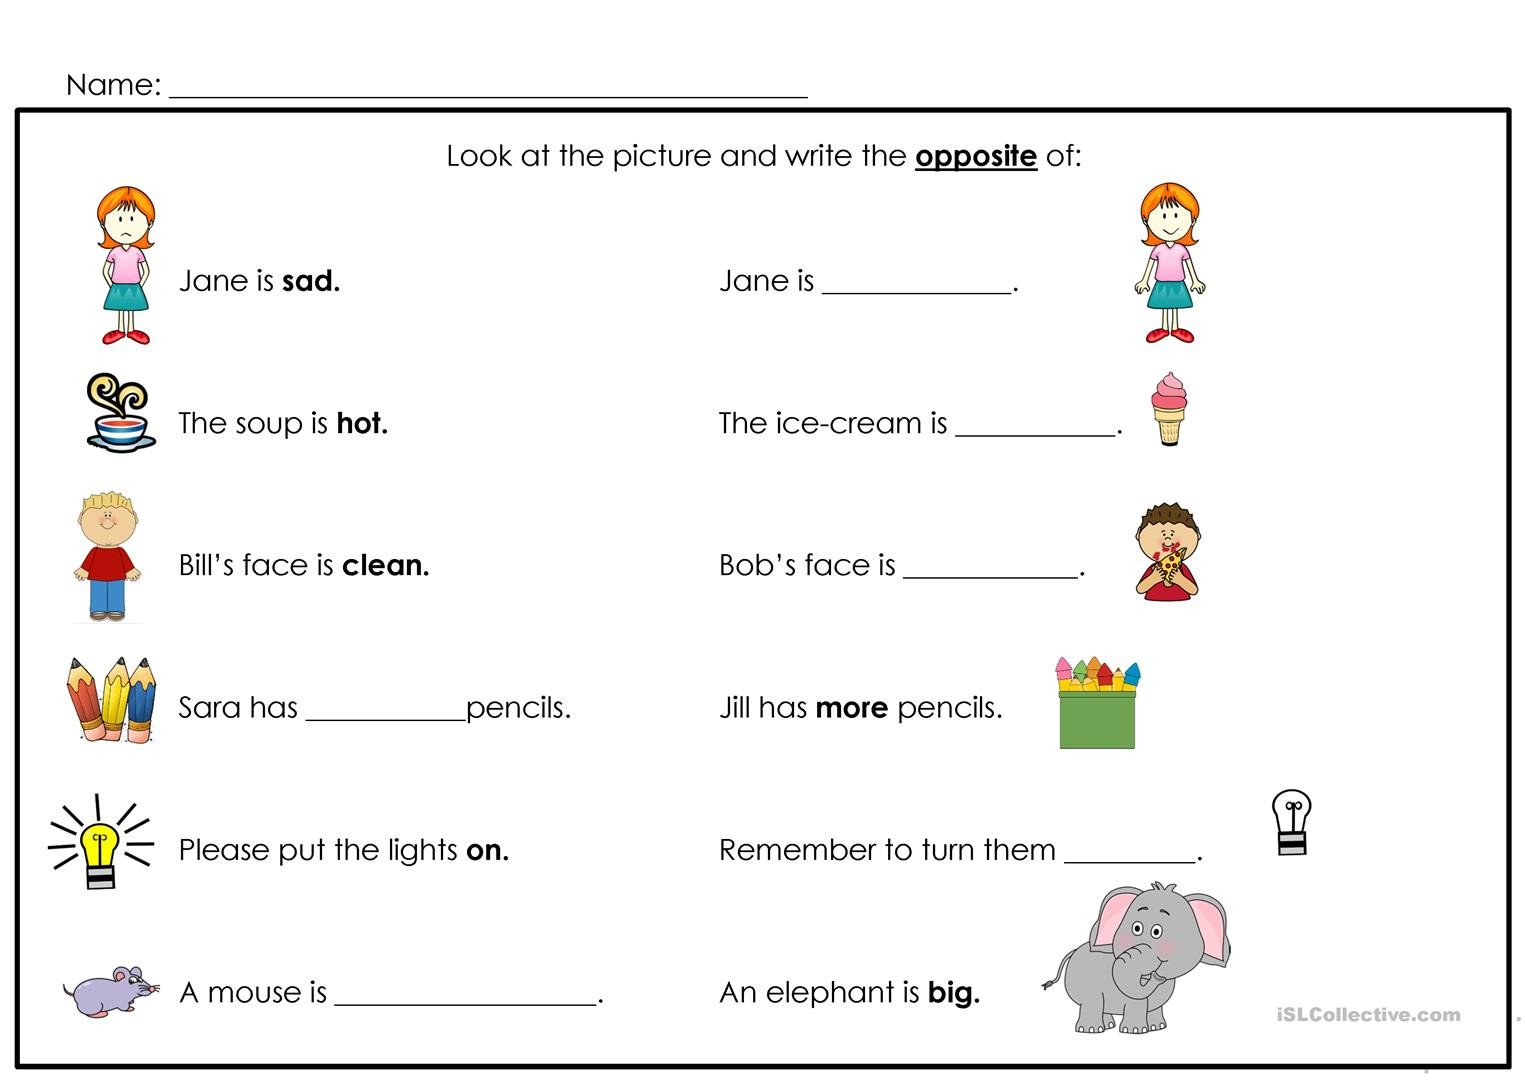 Preschool Opposites Worksheets Opposites English Esl Worksheets for Distance Learning and